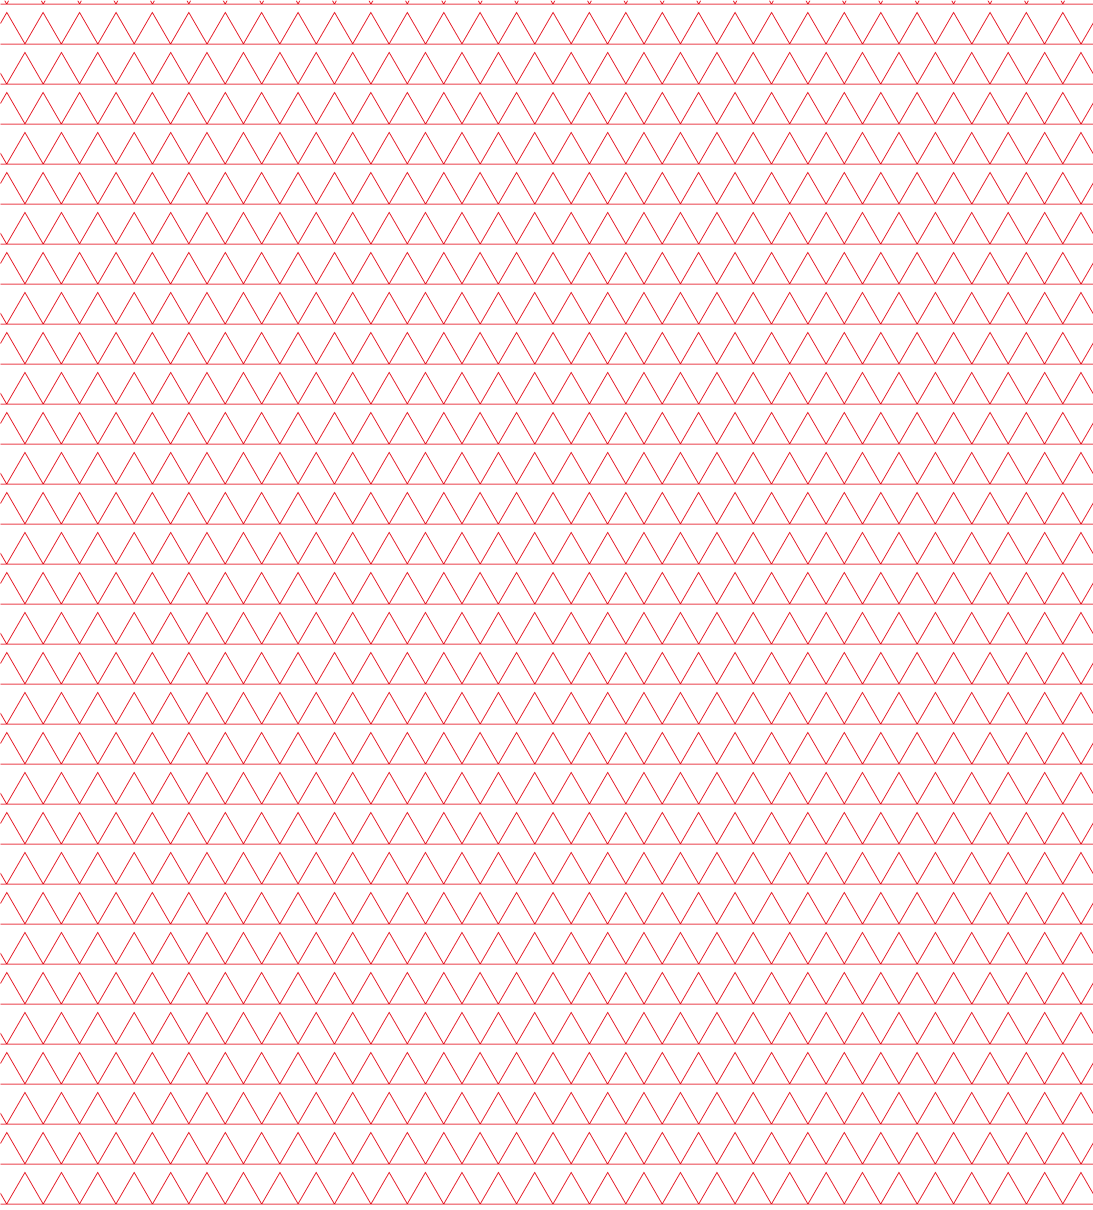 red triangles, minimalistic pattern vectors, seamless, ideal for concept works, presentations and cover designs, templates made for Illustrator